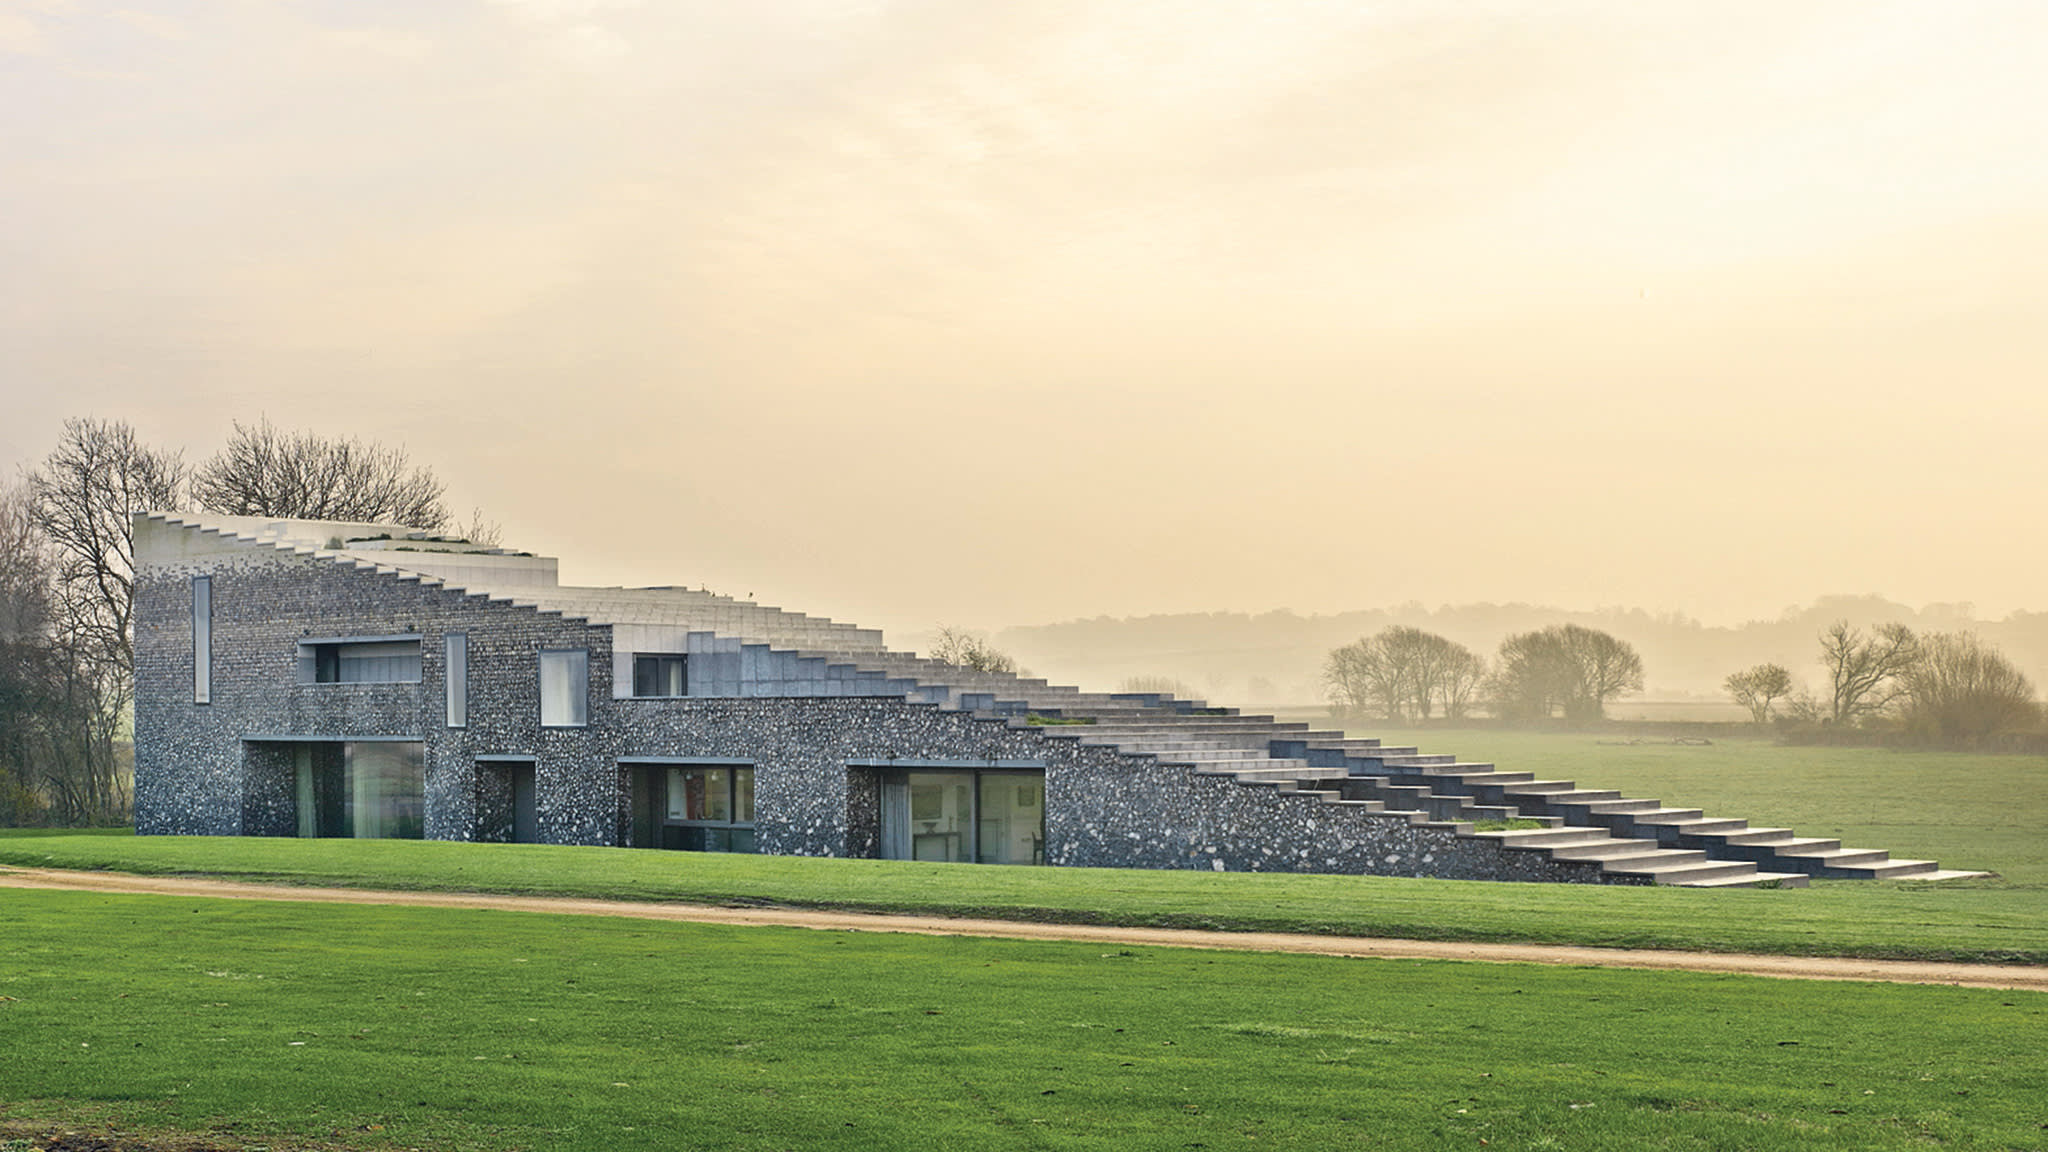 The UK's best designed home? RIBA's Manser Medal seeks the answer | Financial Times